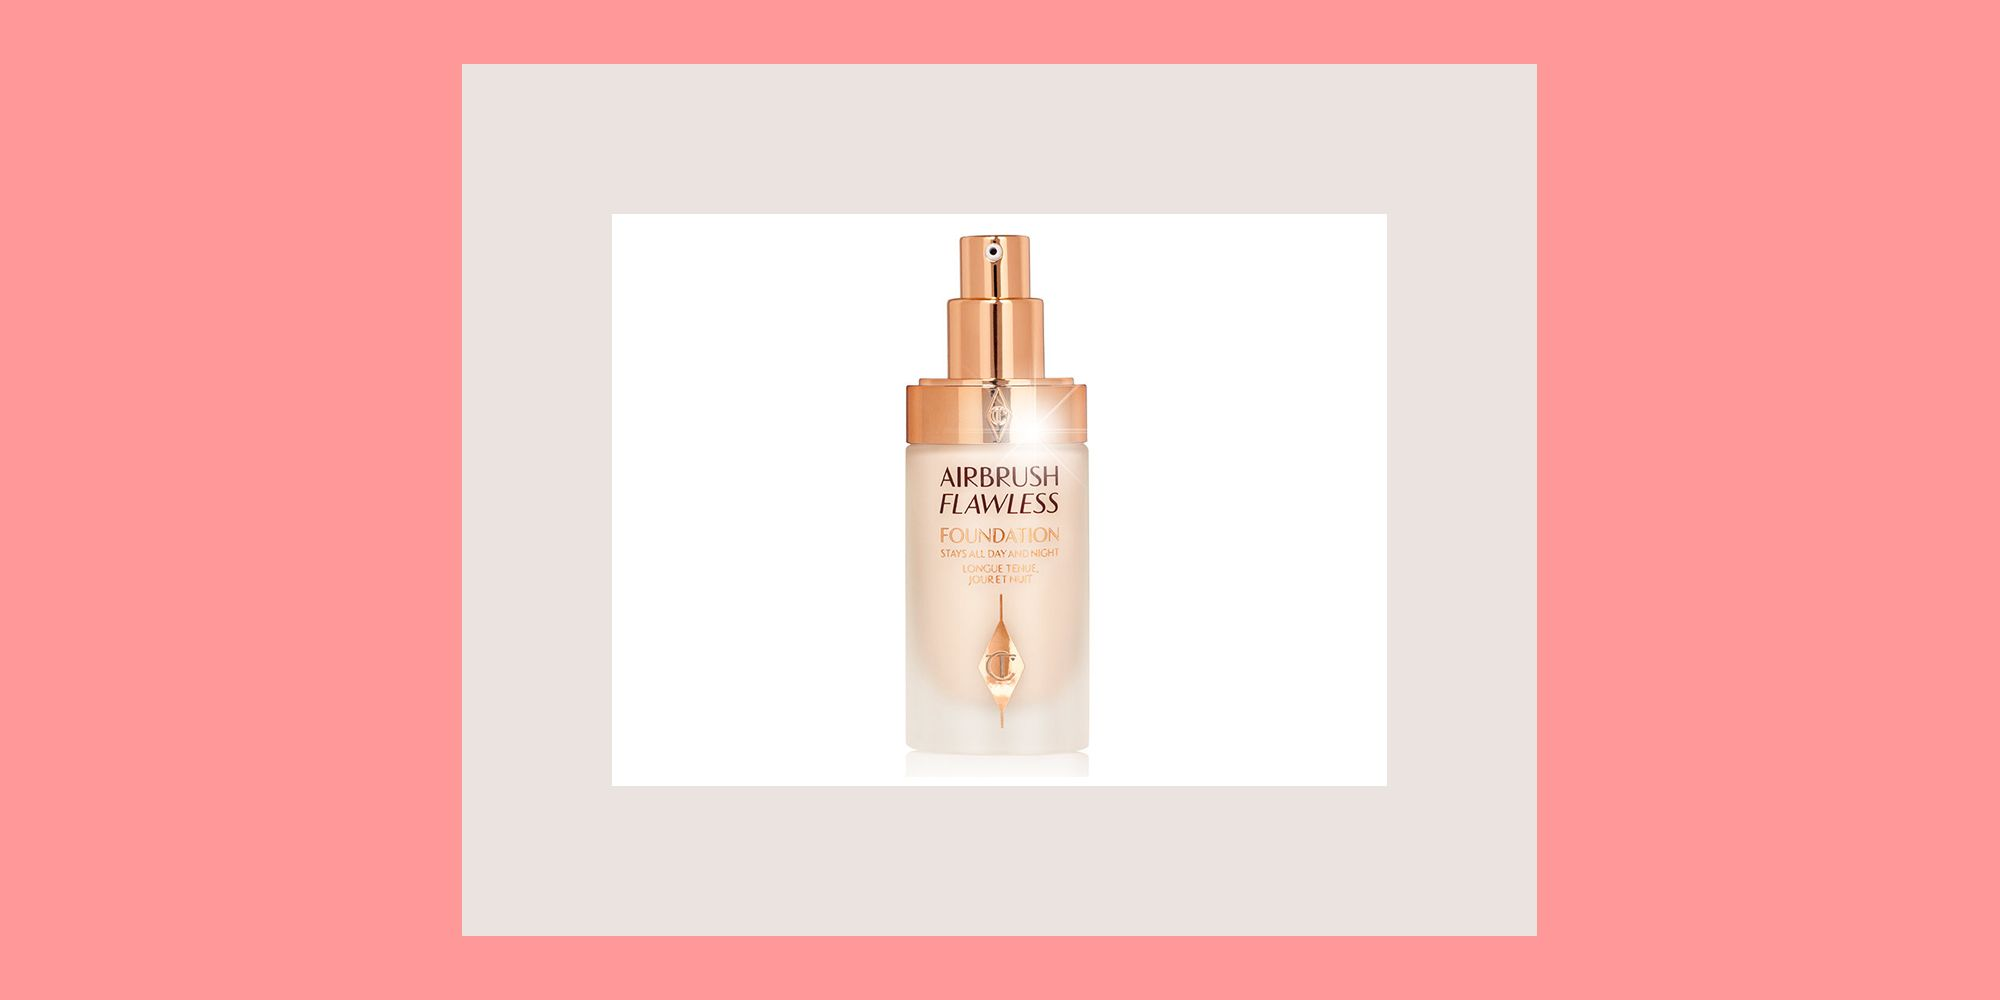 Why 10,000 people have joined the waiting list for Charlotte Tilbury's new Airbrush Flawless Foundation